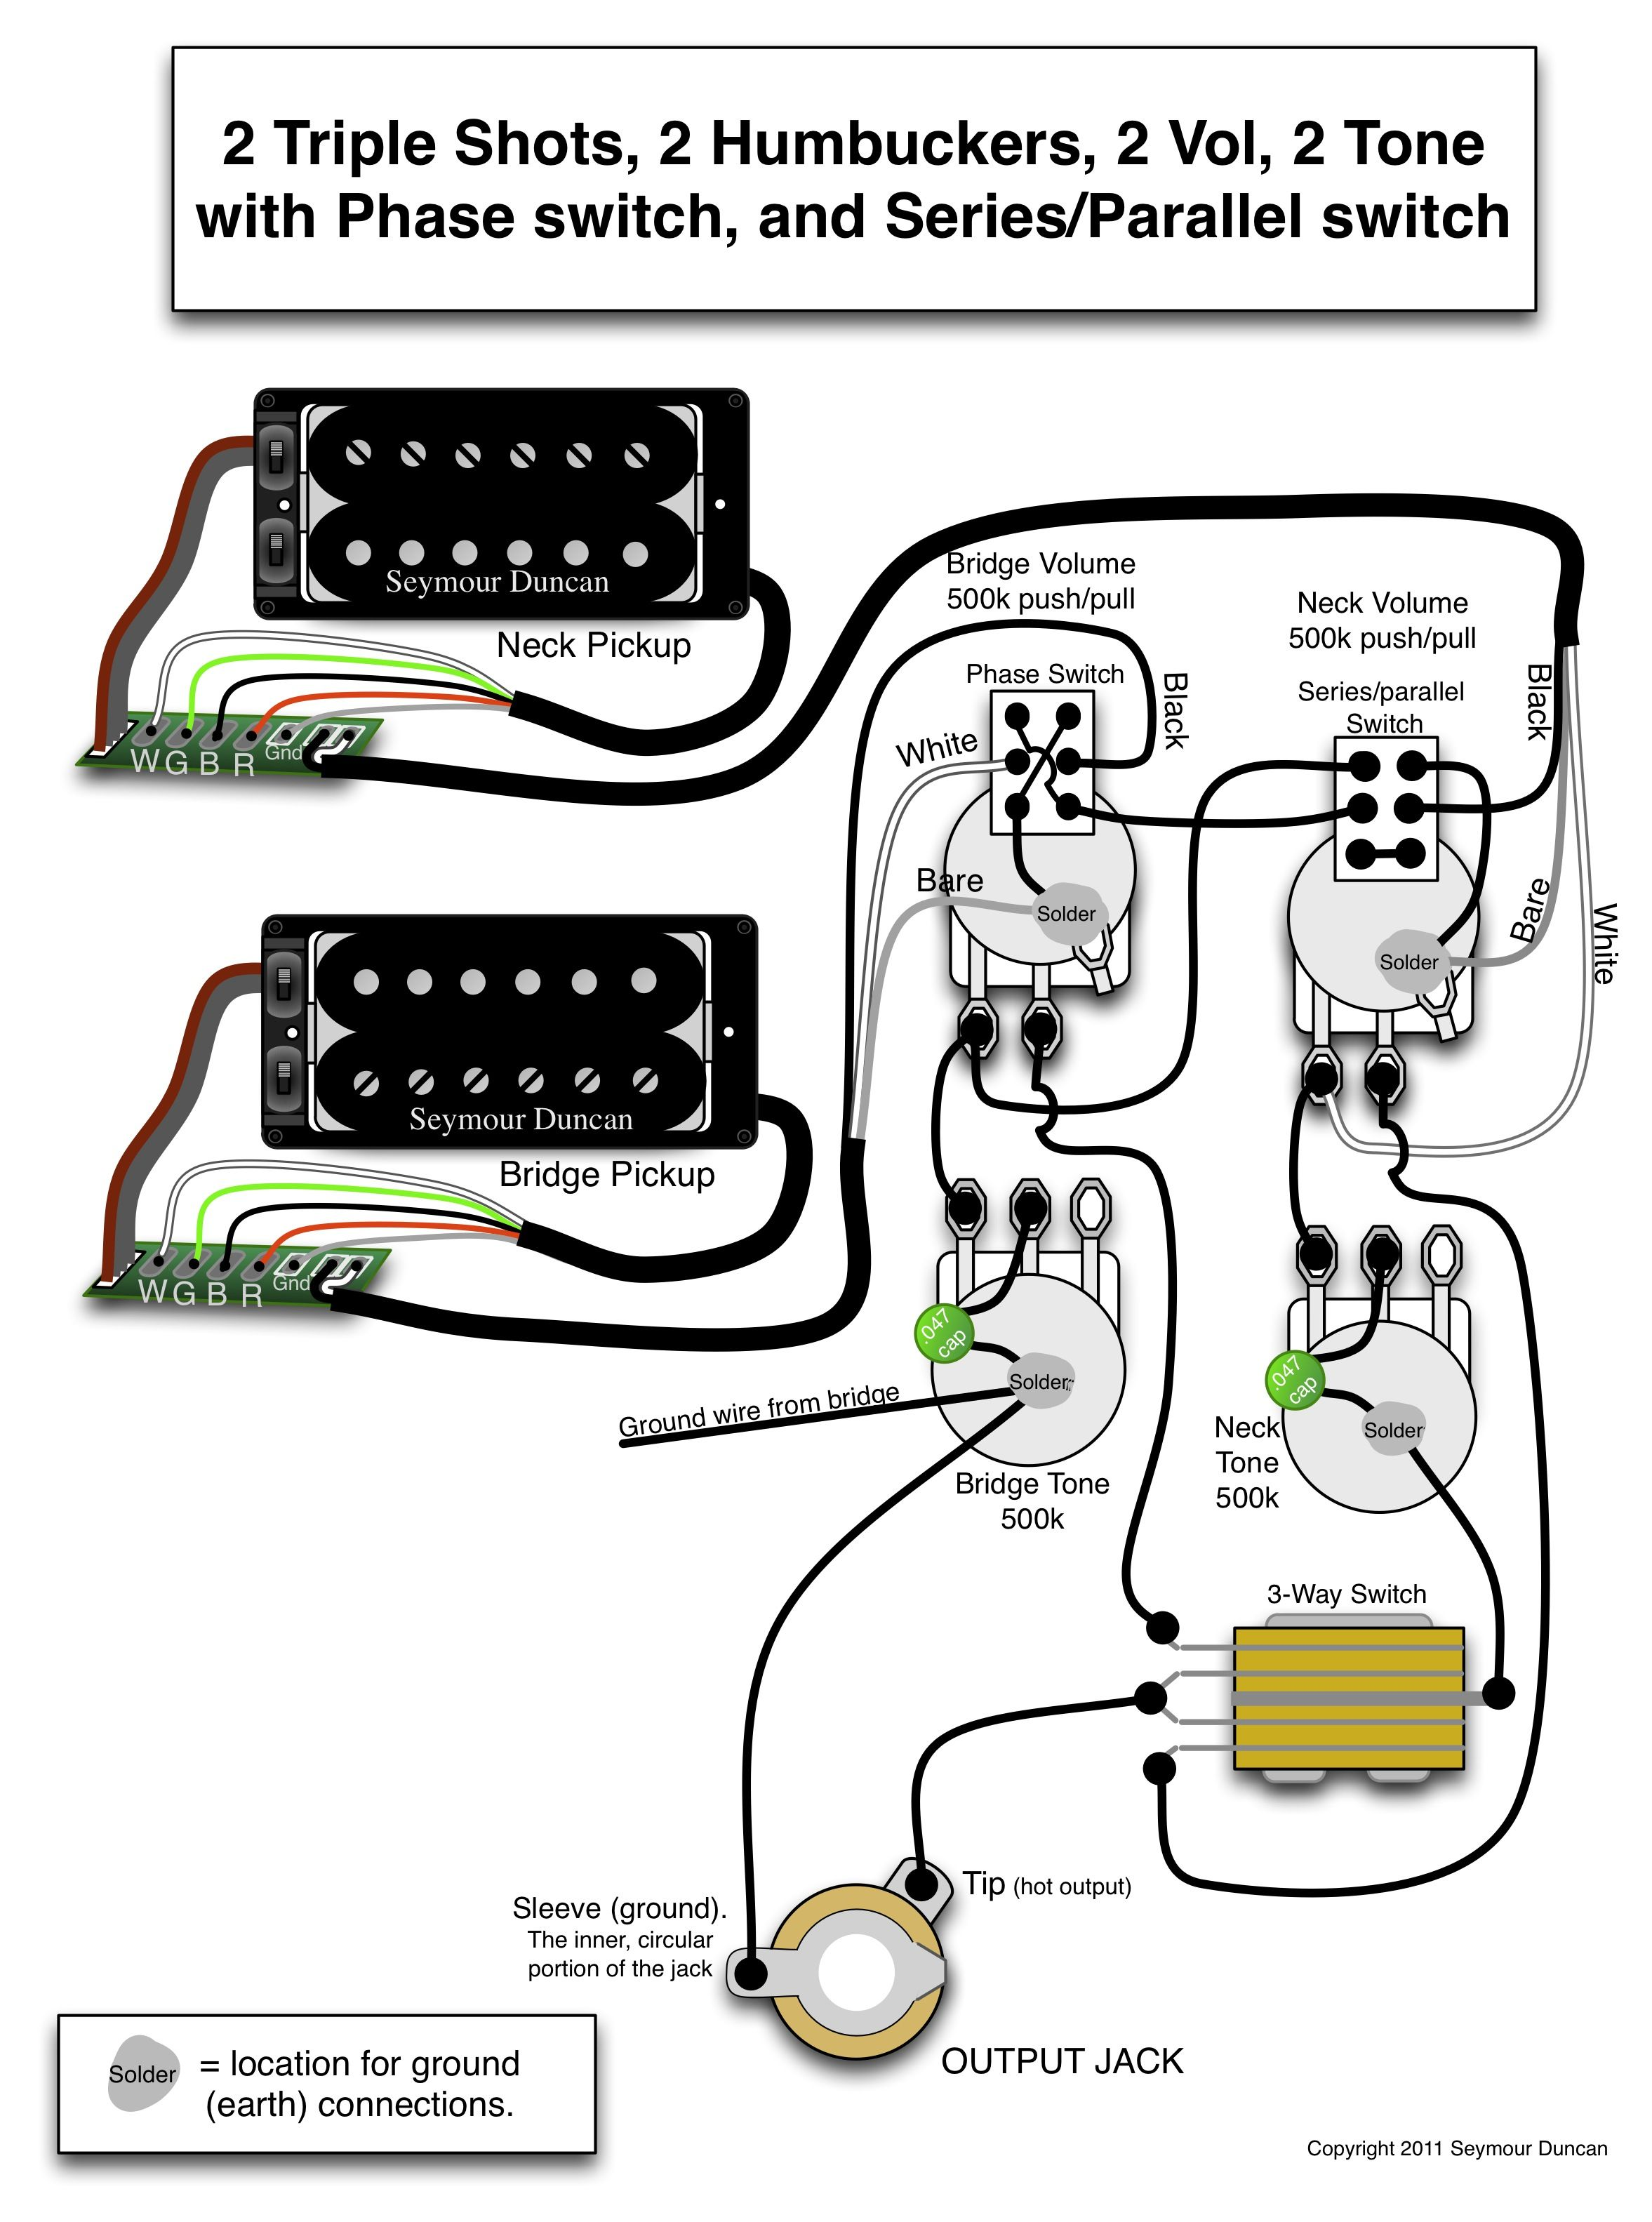 Seymour Duncan Wiring Diagram 2 Triple Shots Humbuckers Vol For Electric Guitar Site Tone One With Phase Switch And The Other Series Parallel